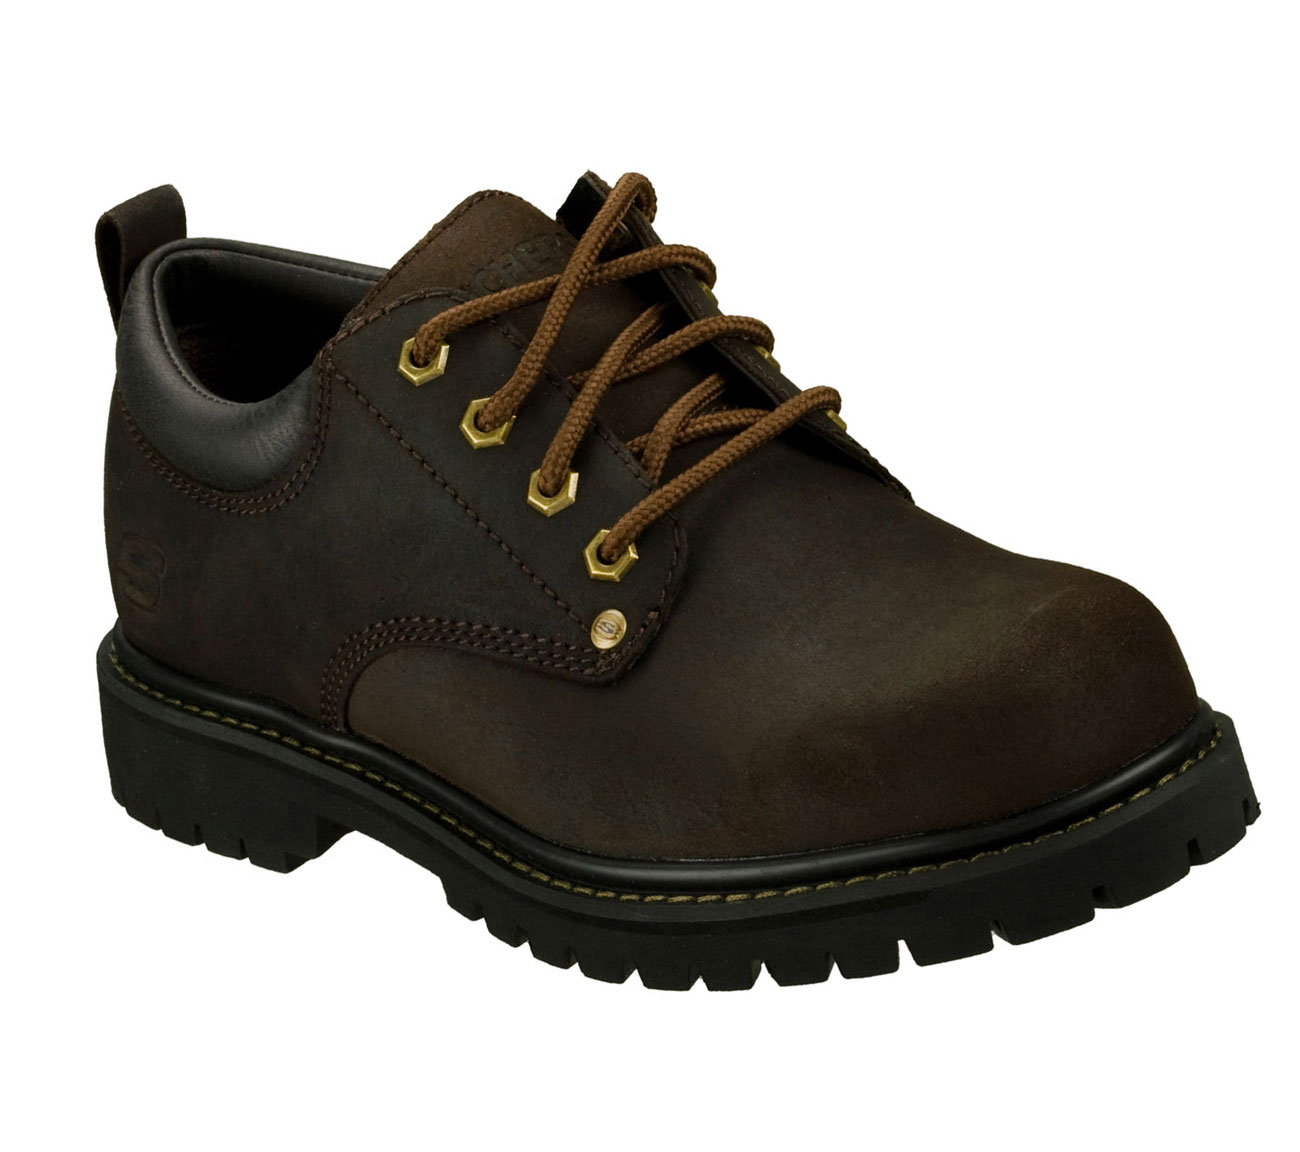 Skechers Alley Cats Mens Oxford Shoes